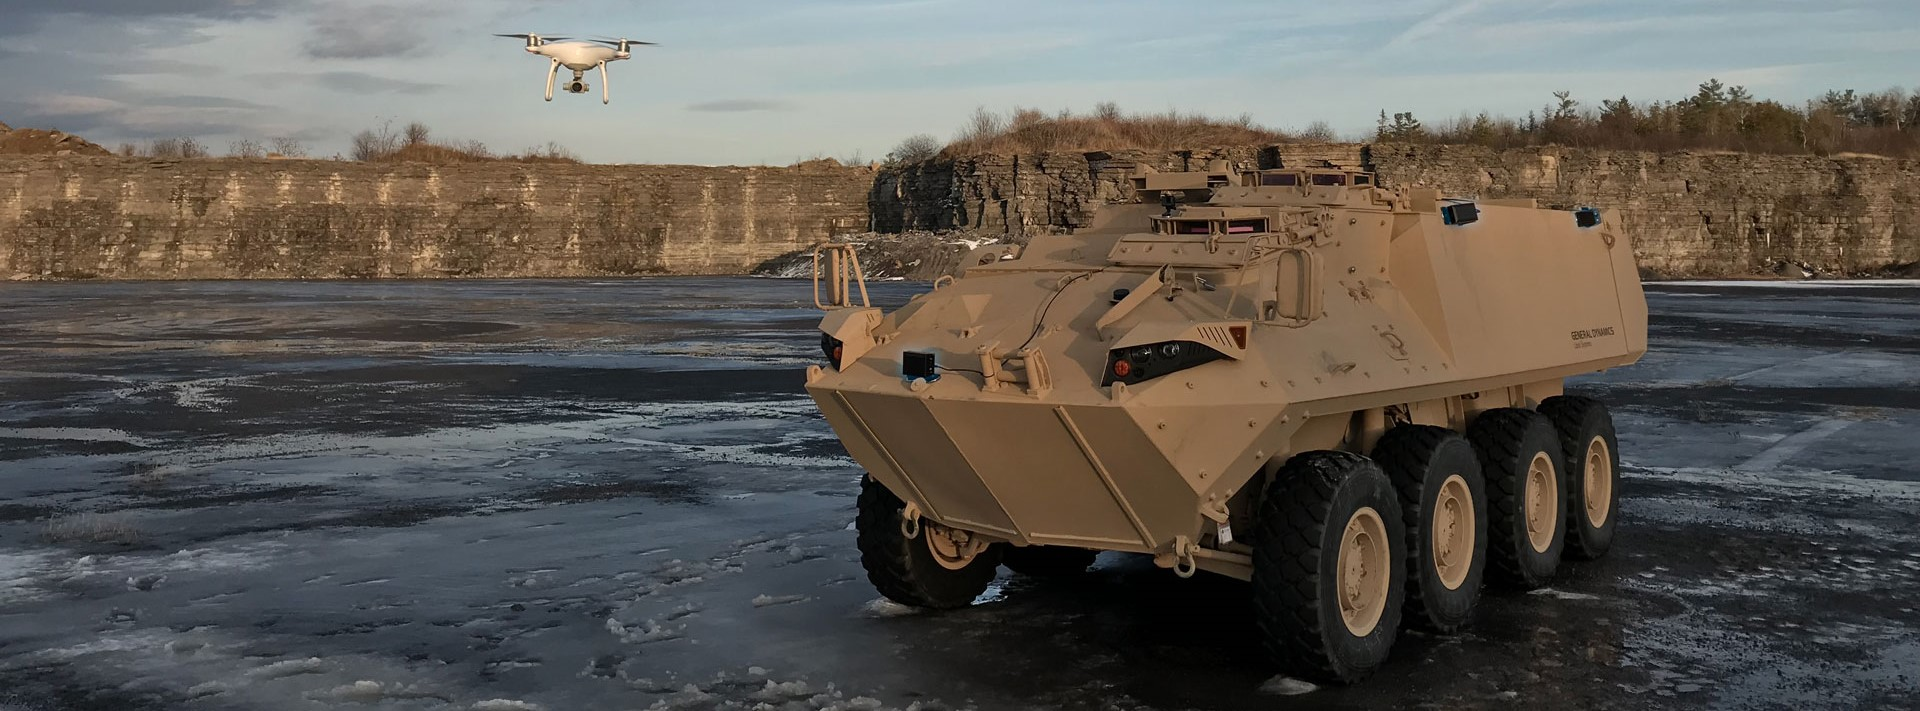 gdls lav with mydefence counter uas sensors